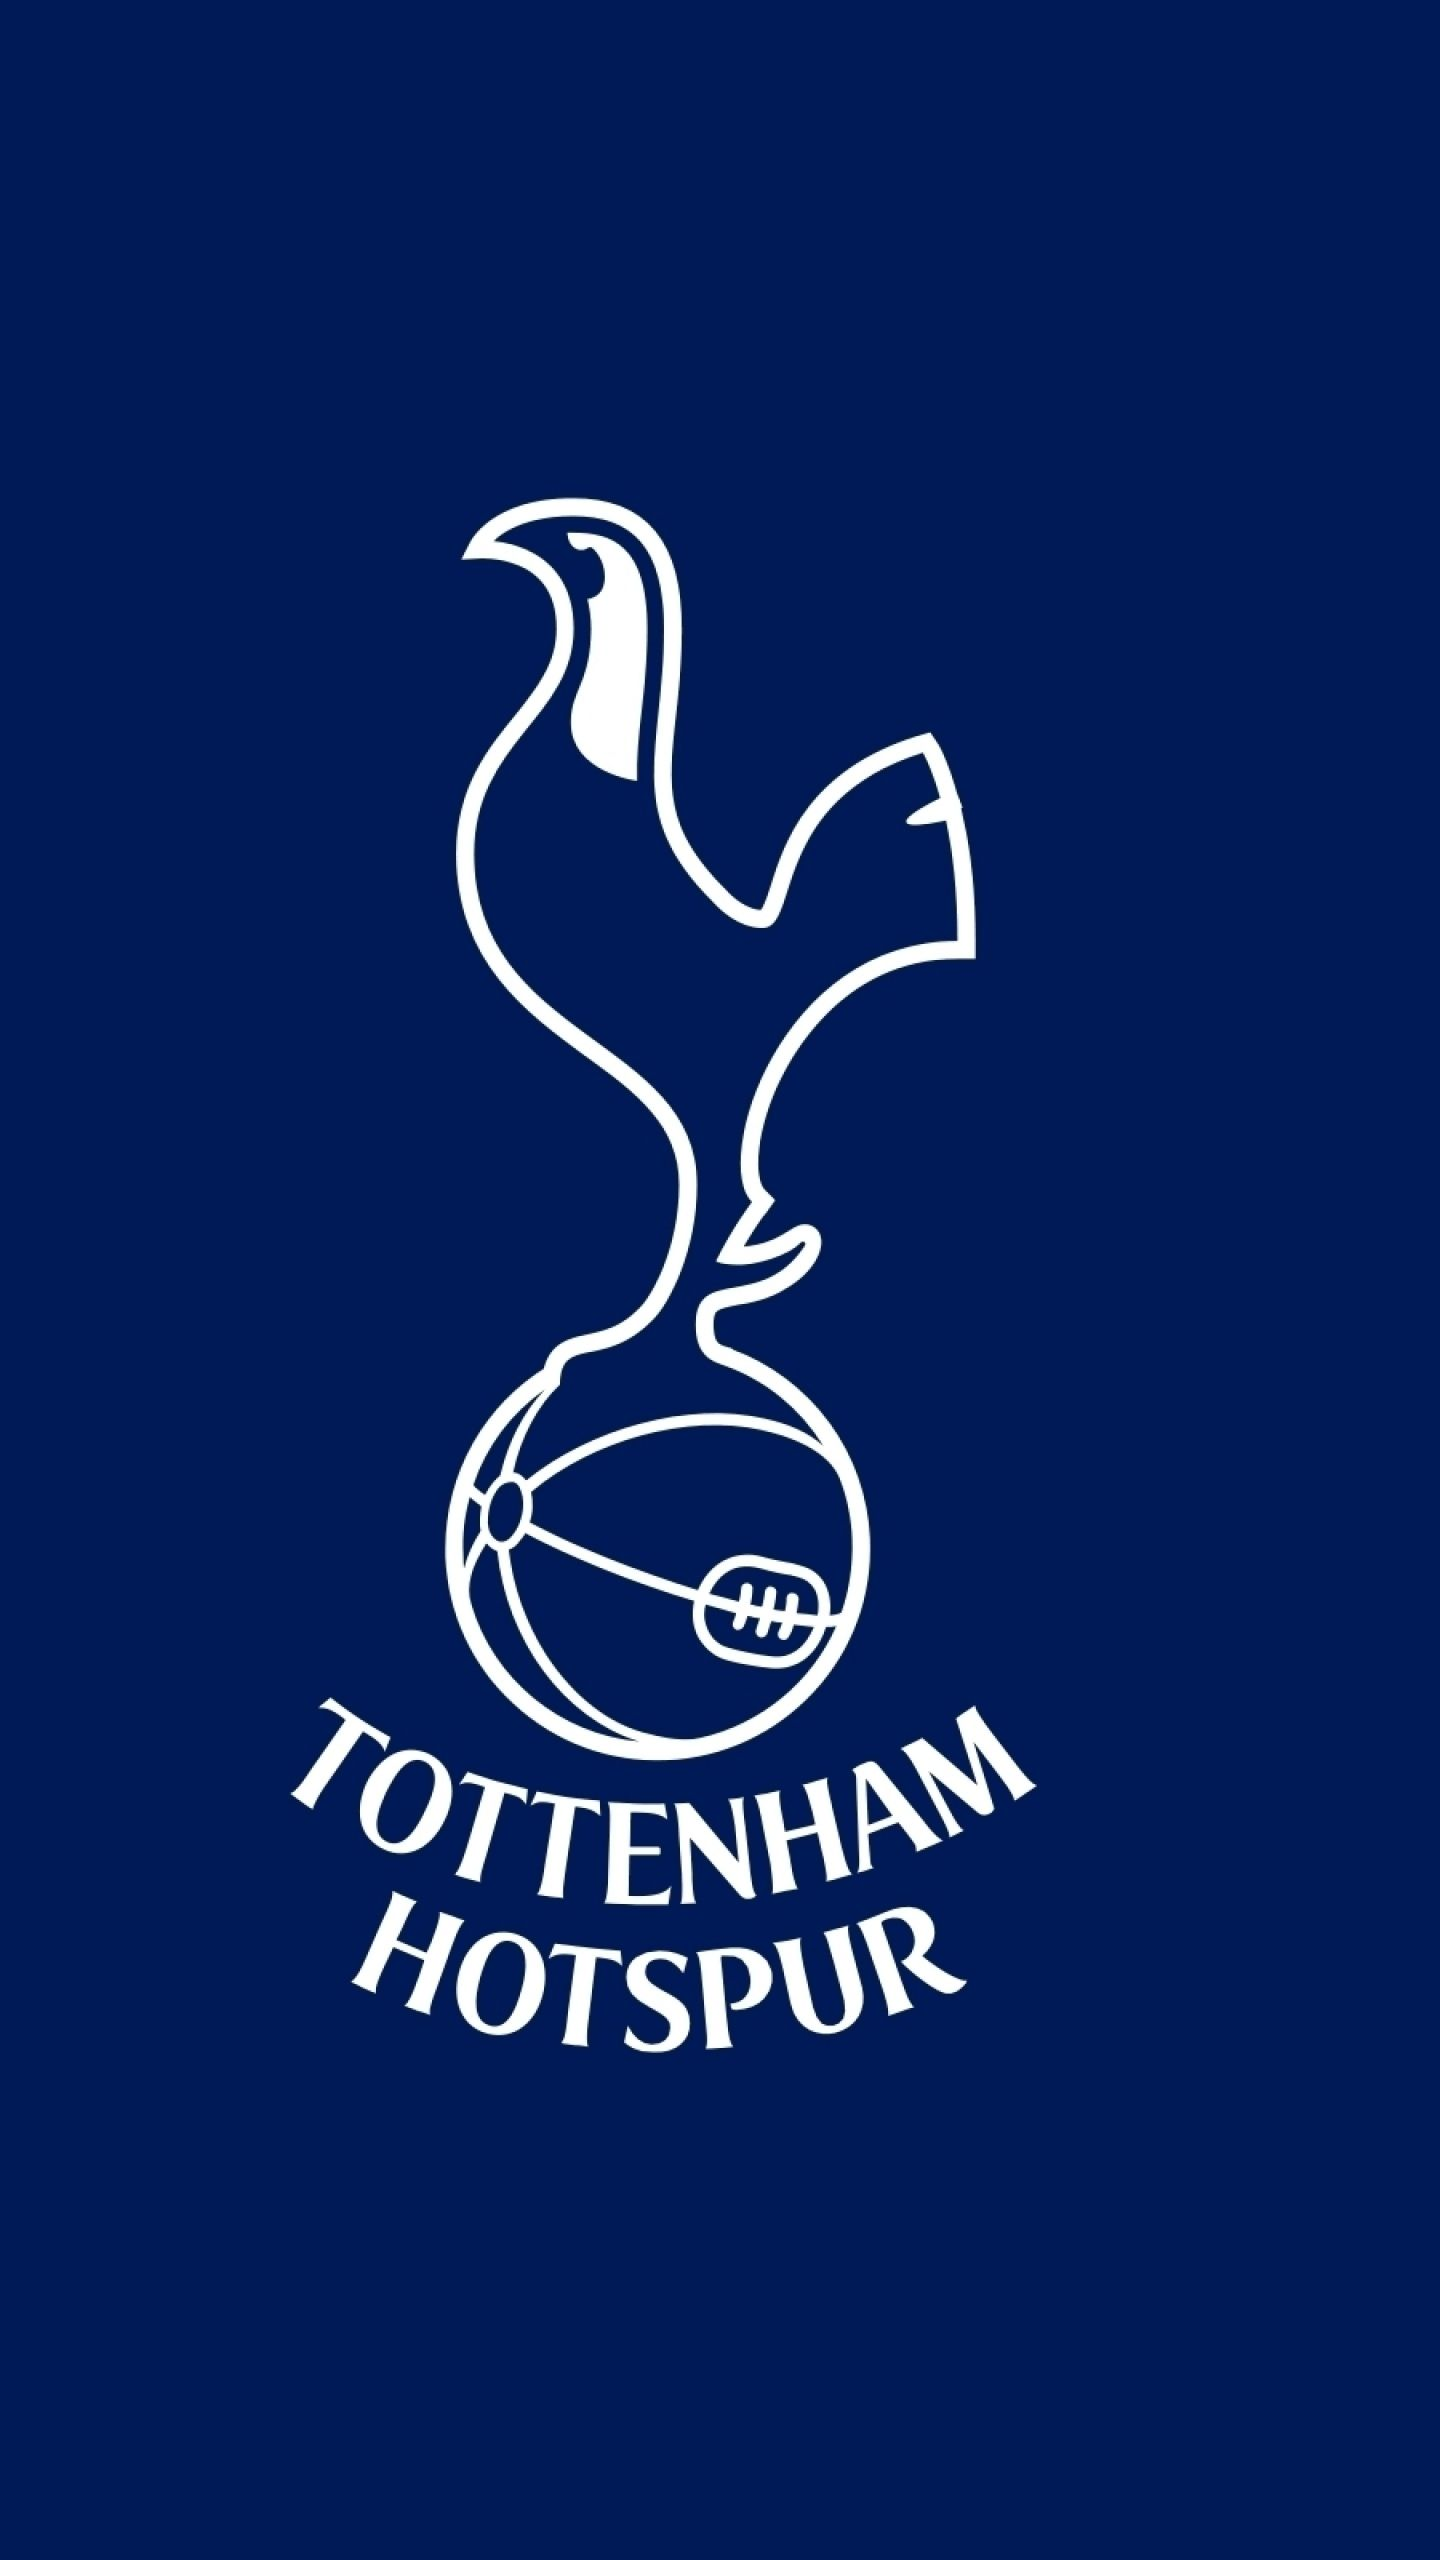 10 Latest Tottenham Hotspur Iphone Wallpaper Full Hd 1920 1080 For Pc Background Tottenham Hotspur Wallpaper Iphone Wallpapers Full Hd Iphone Wallpaper